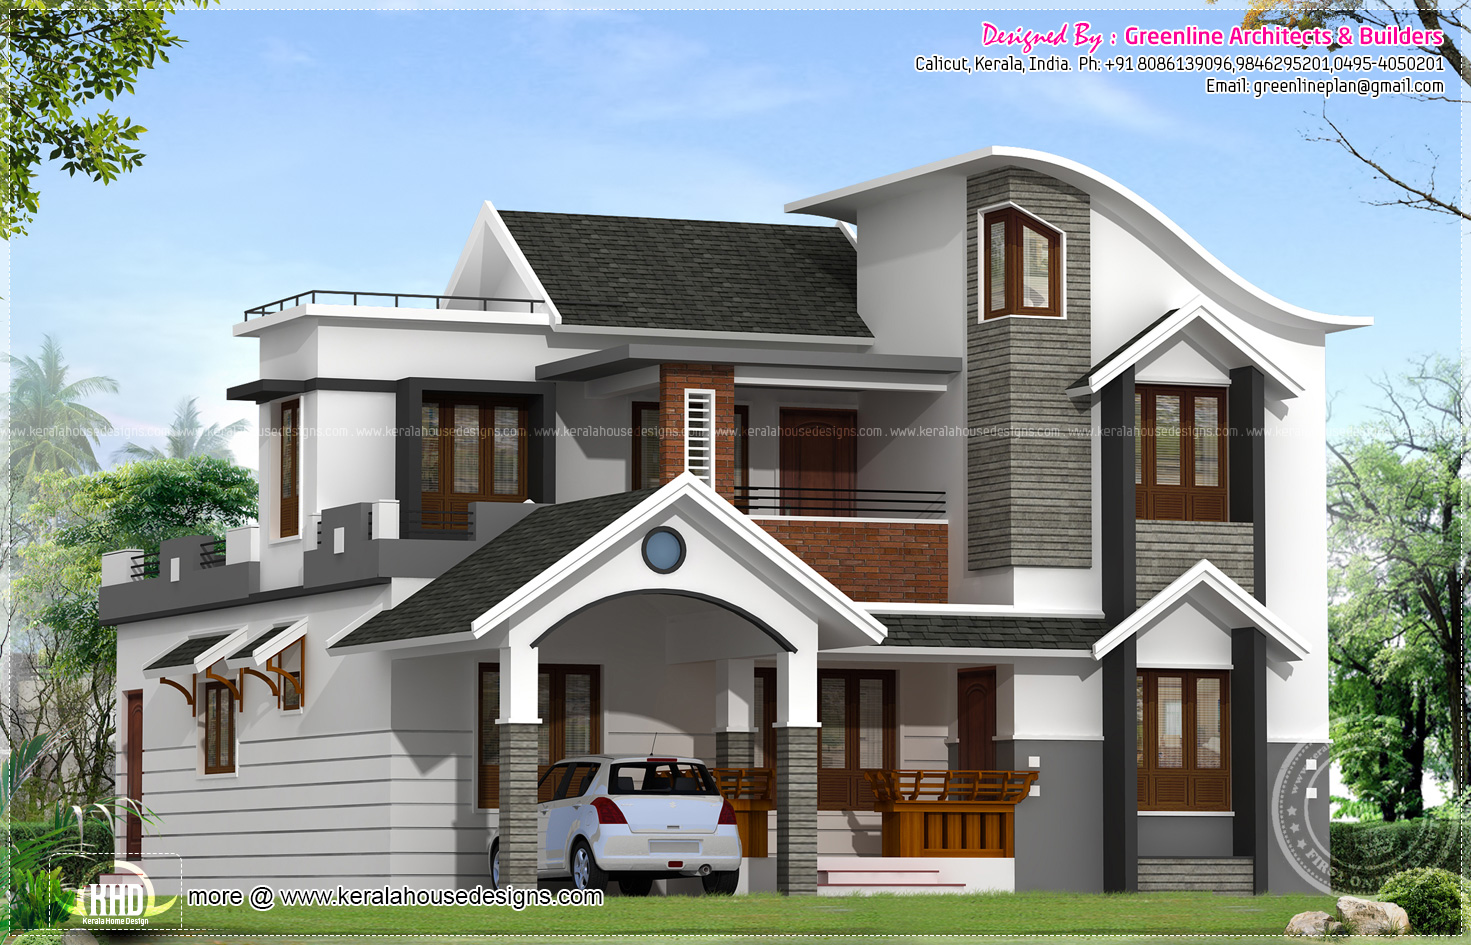 May 2013 kerala home design and floor plans Modern home design